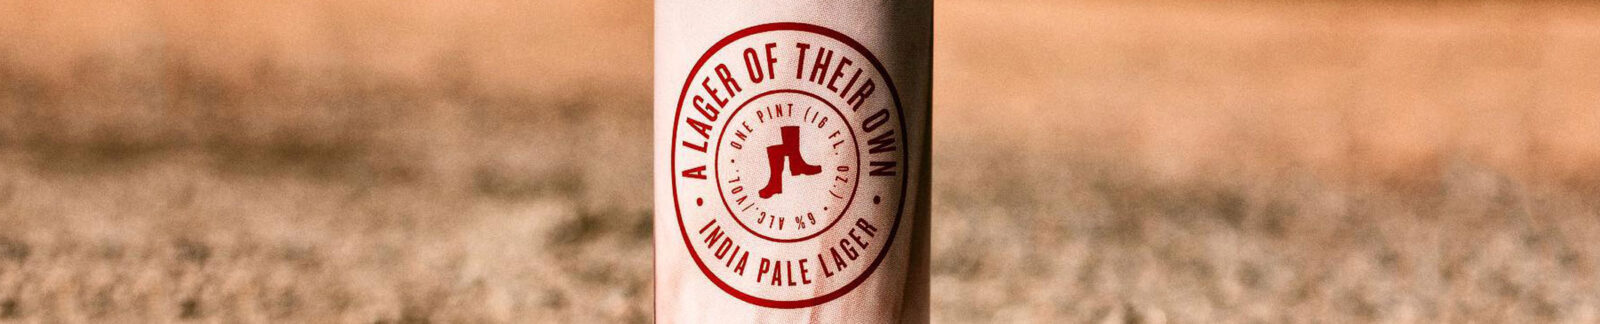 Lone Pine Brewing, A Lager of Their Own header